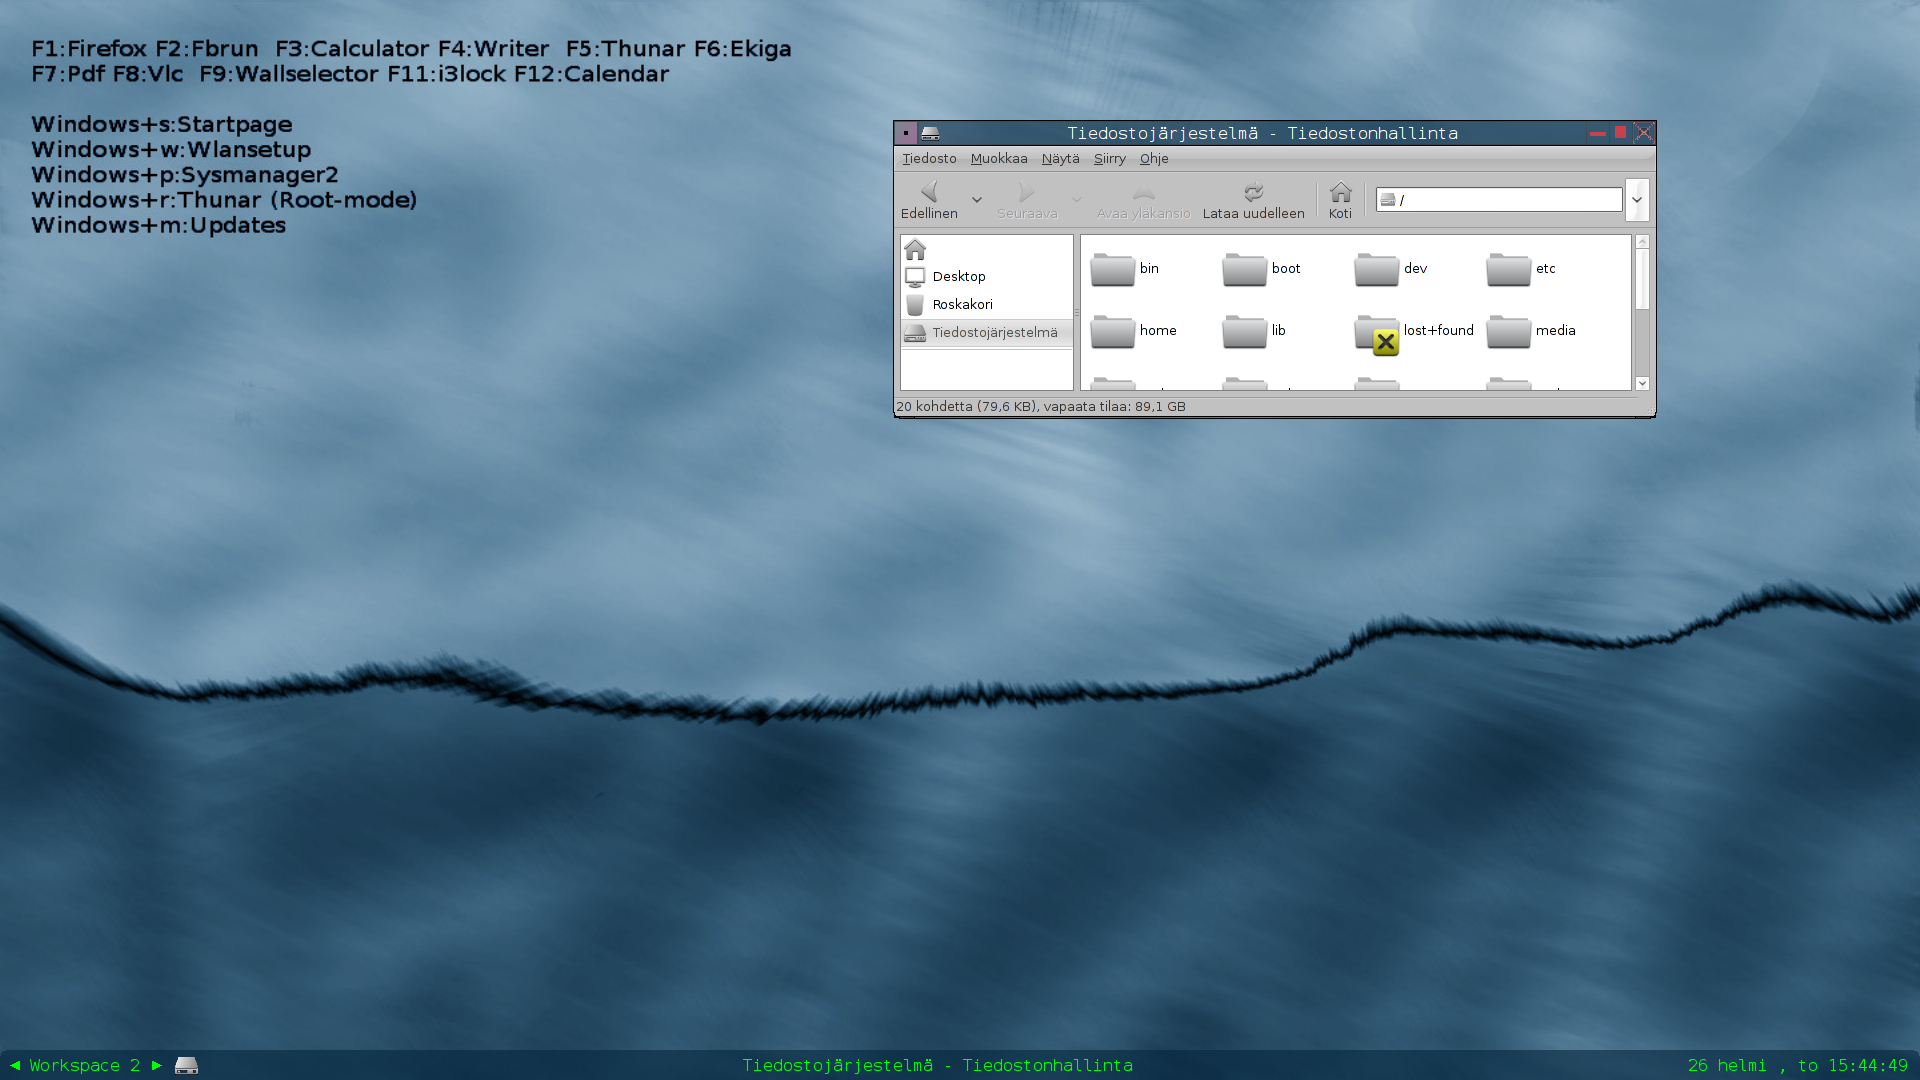 Audax 0.1.4 desktop with an alternative outlook.